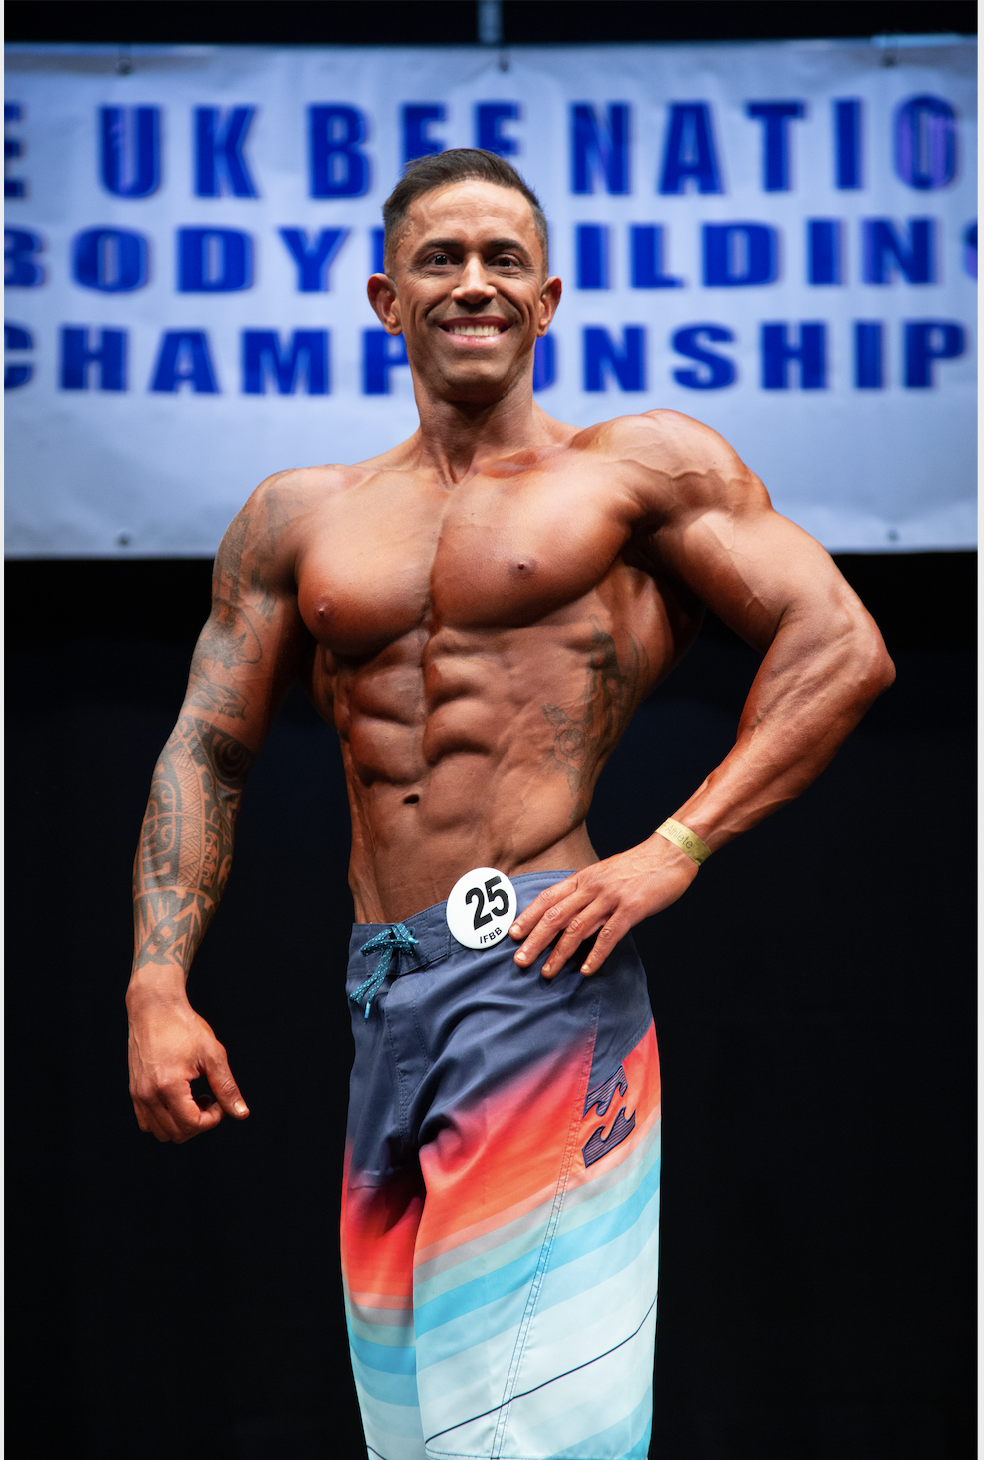 Francesco Roche, who won his height class and the masters class in men's physique.